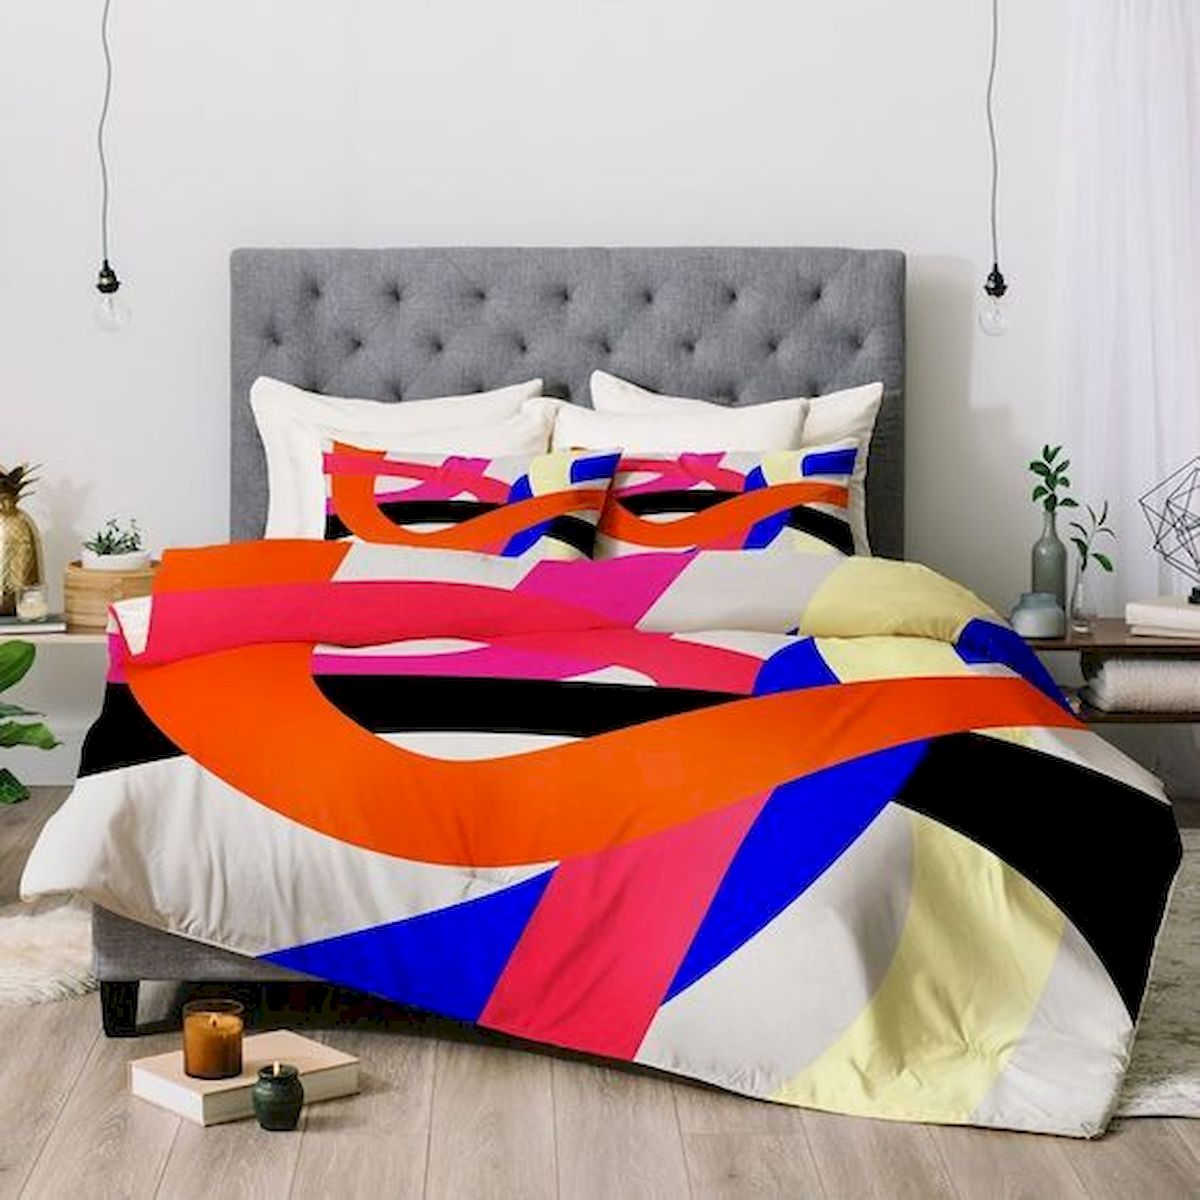 70 Awesome Colorful Bedroom Design Ideas and Remodel (63)